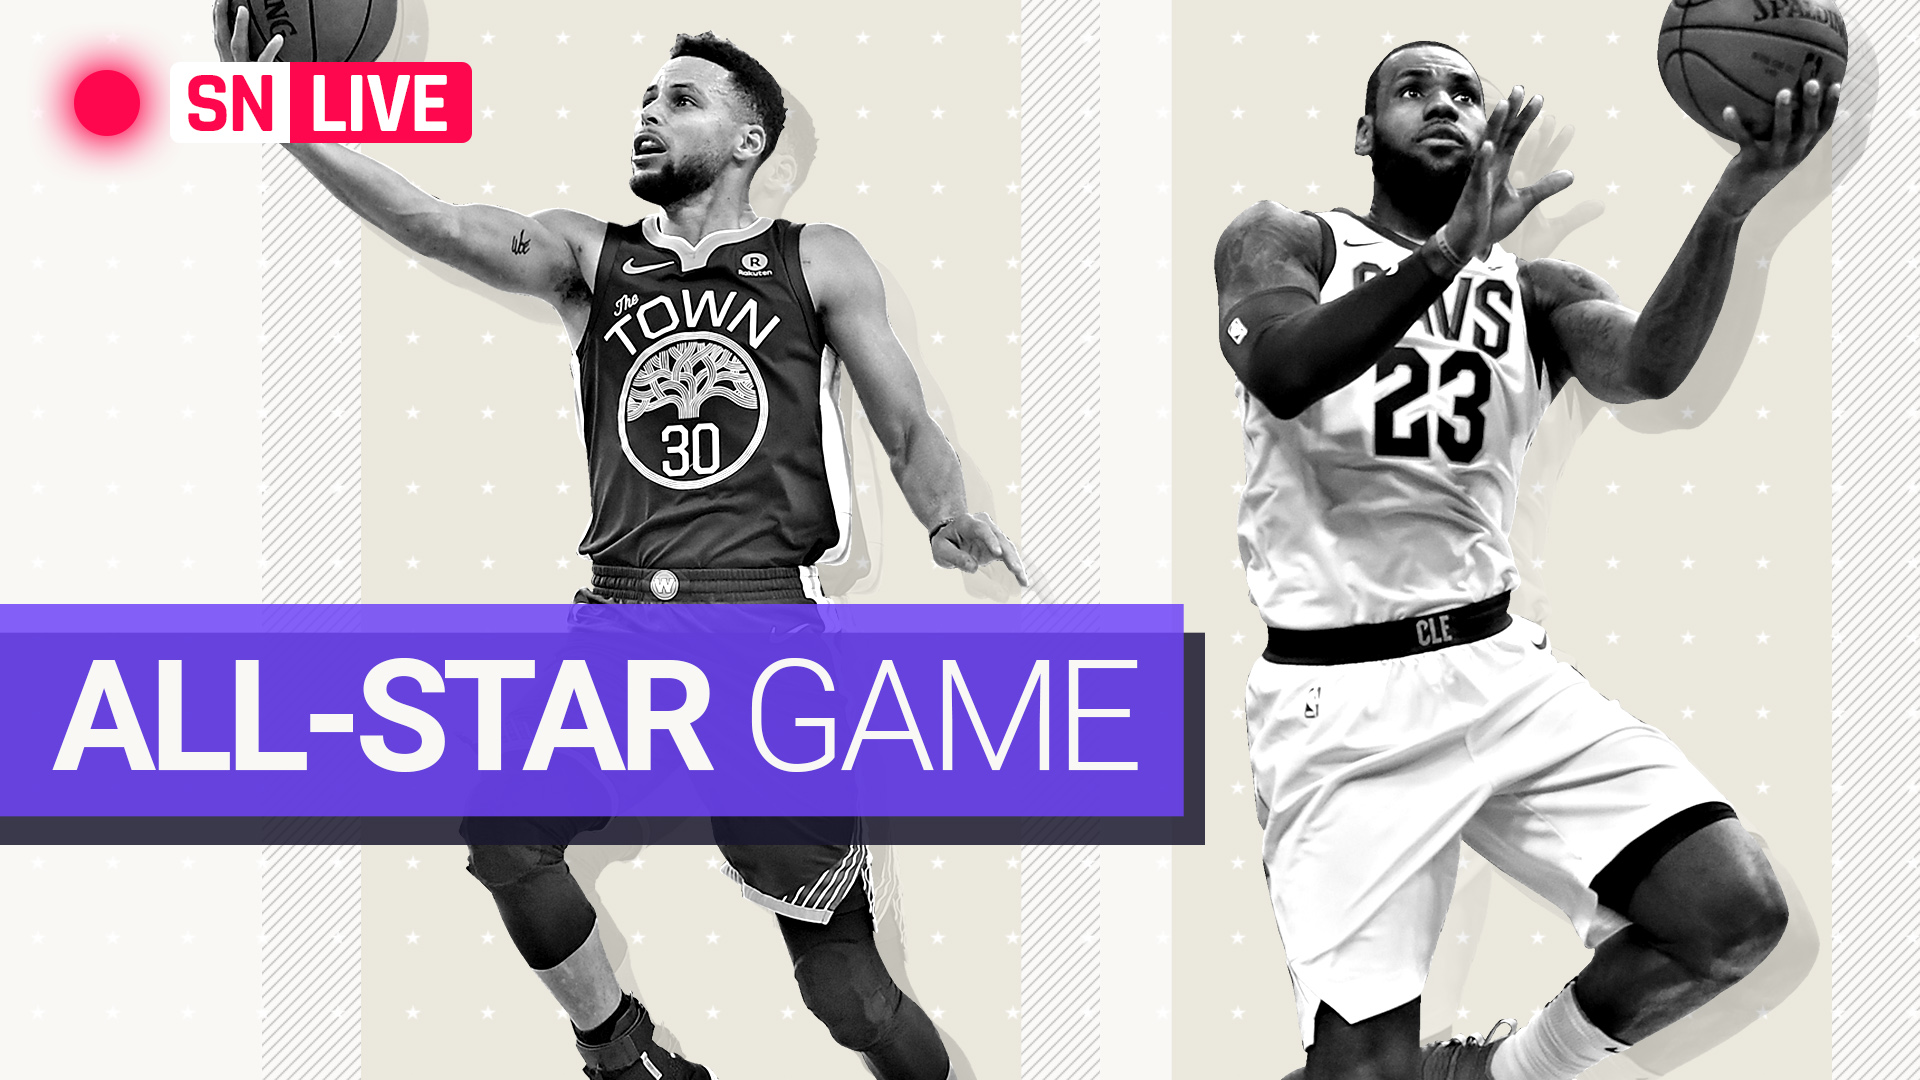 NBA All-Star Game 2019: Schedule, Odds, LeBron vs. Giannis ...